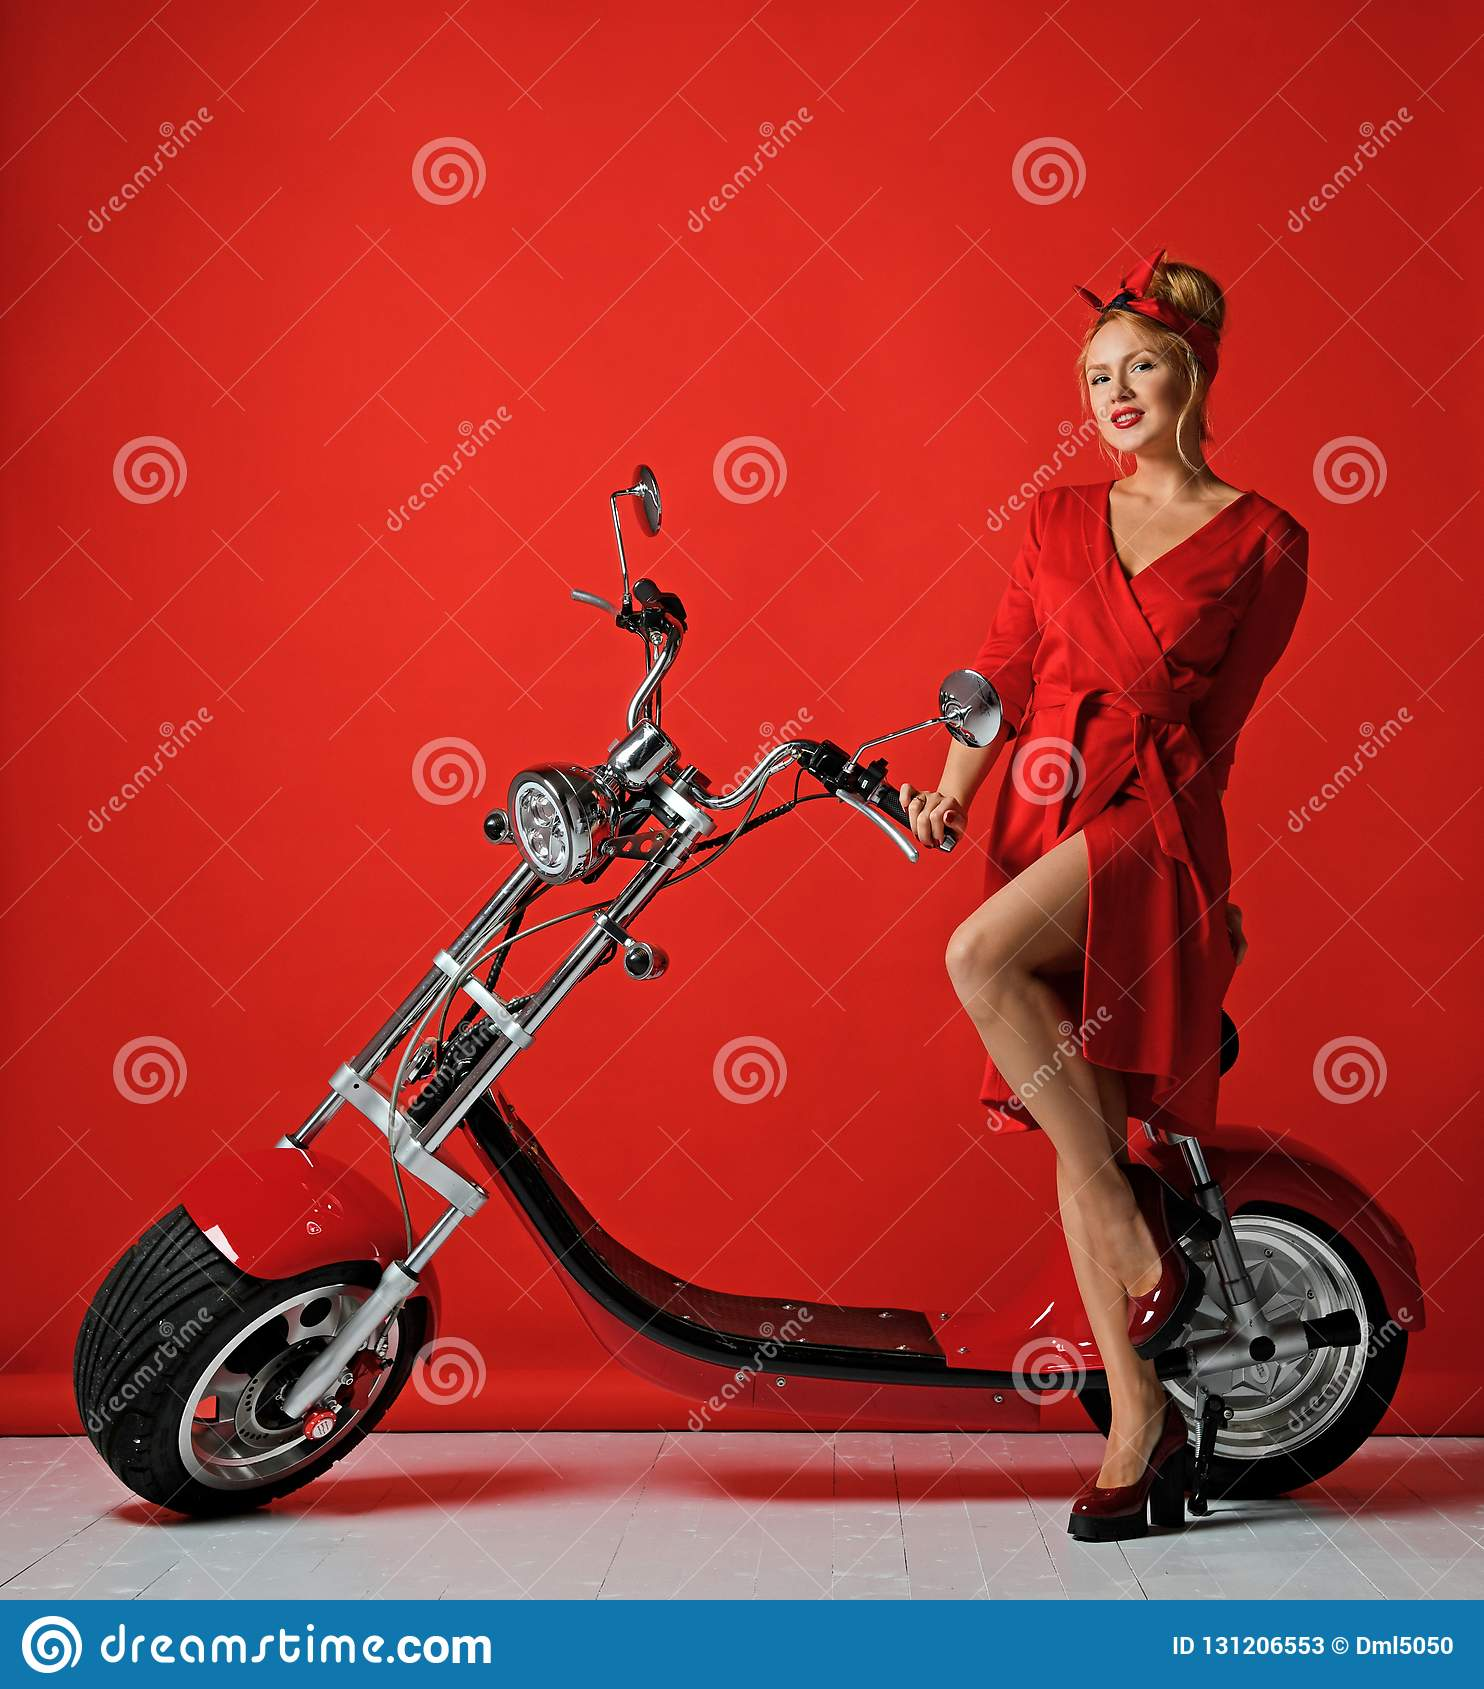 Woman pinup style ride new electric car motorcycle bicycle scooter present for new year 2019